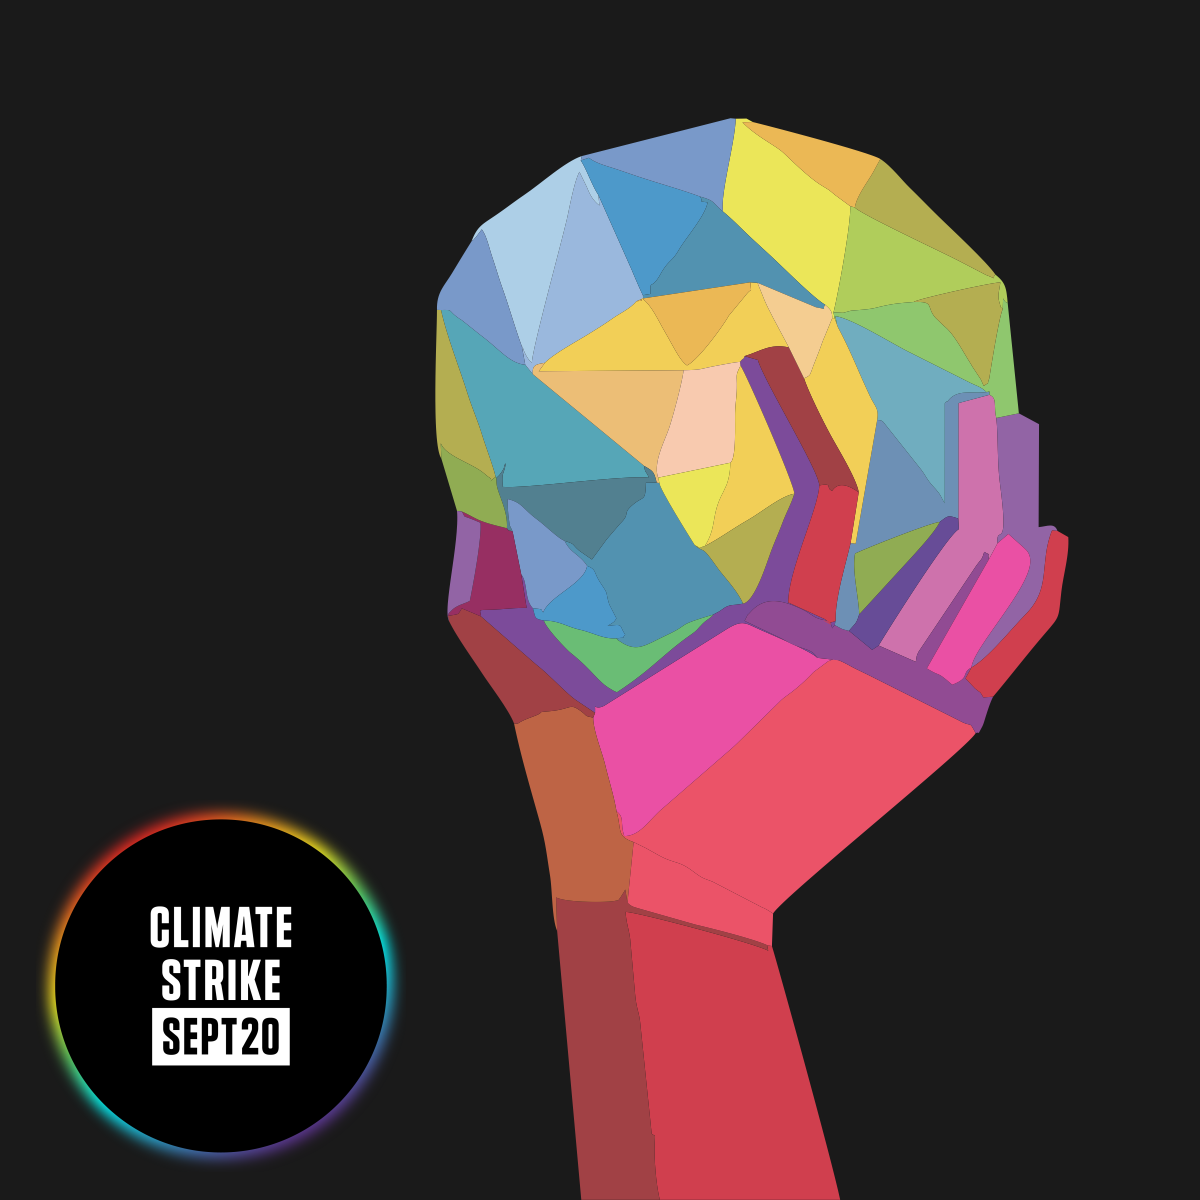 Climate crisis, youth strike call impels action across the